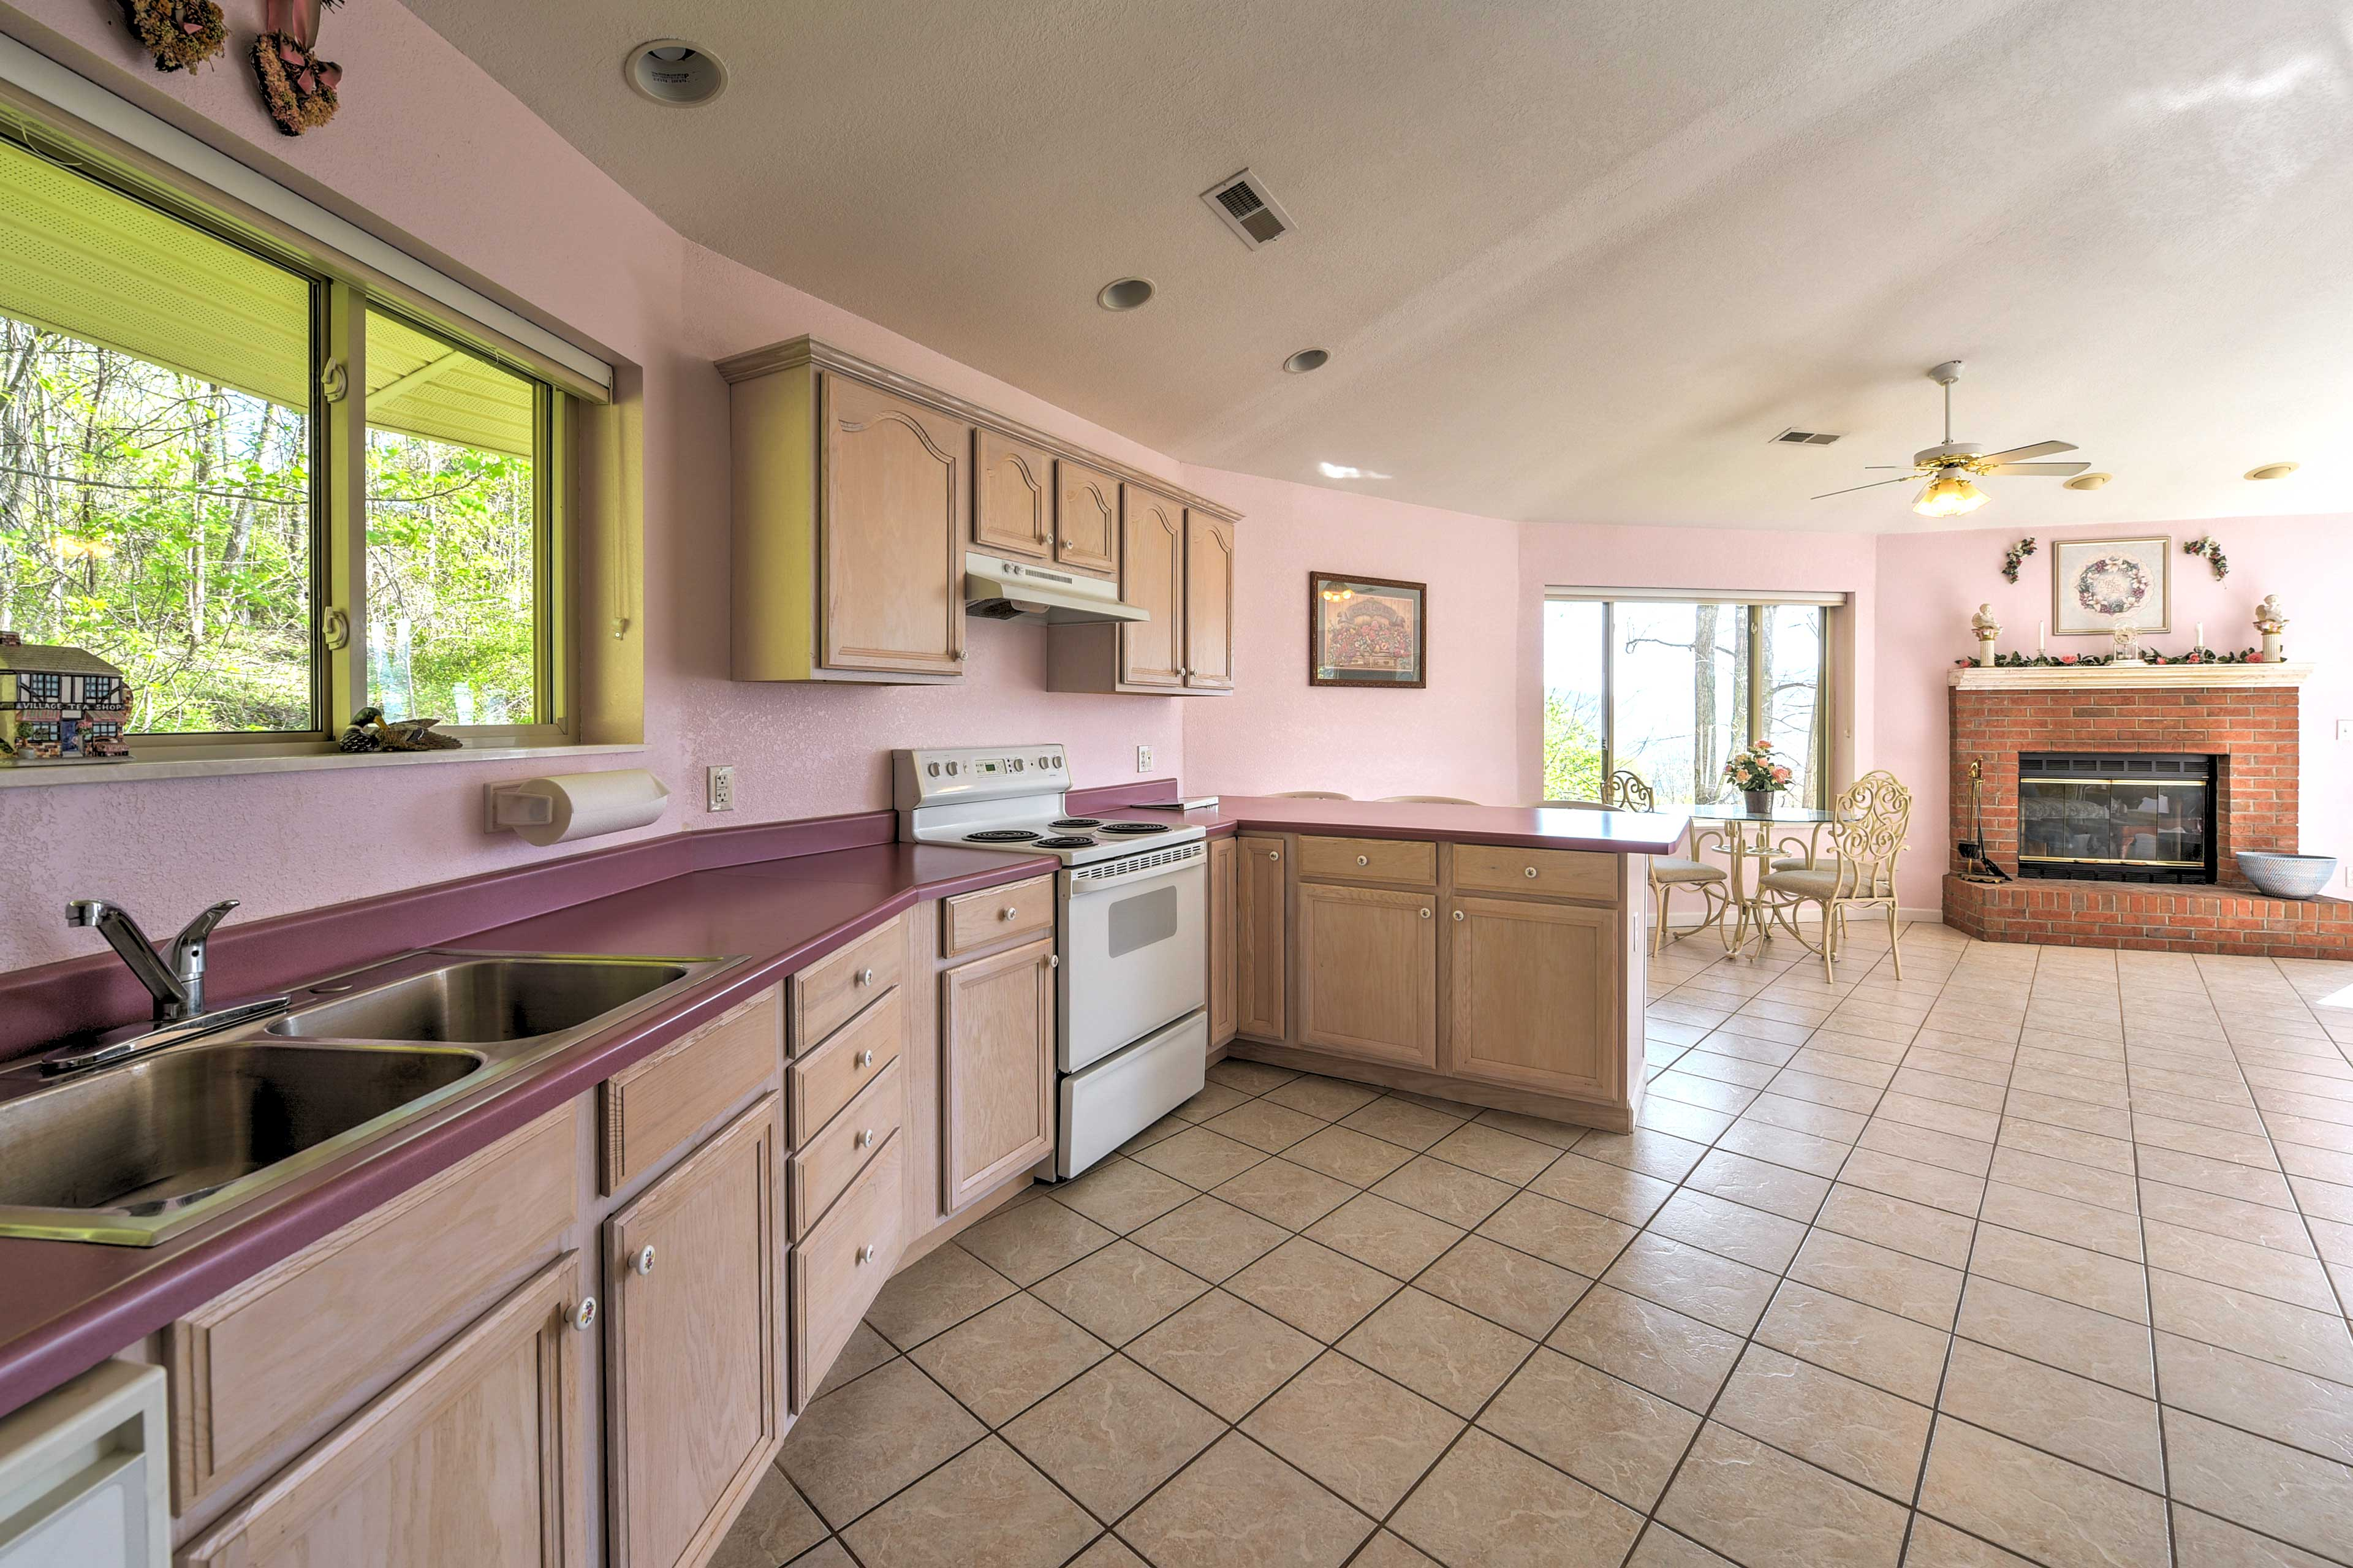 There's plenty of space for multiple chefs in this kitchen!